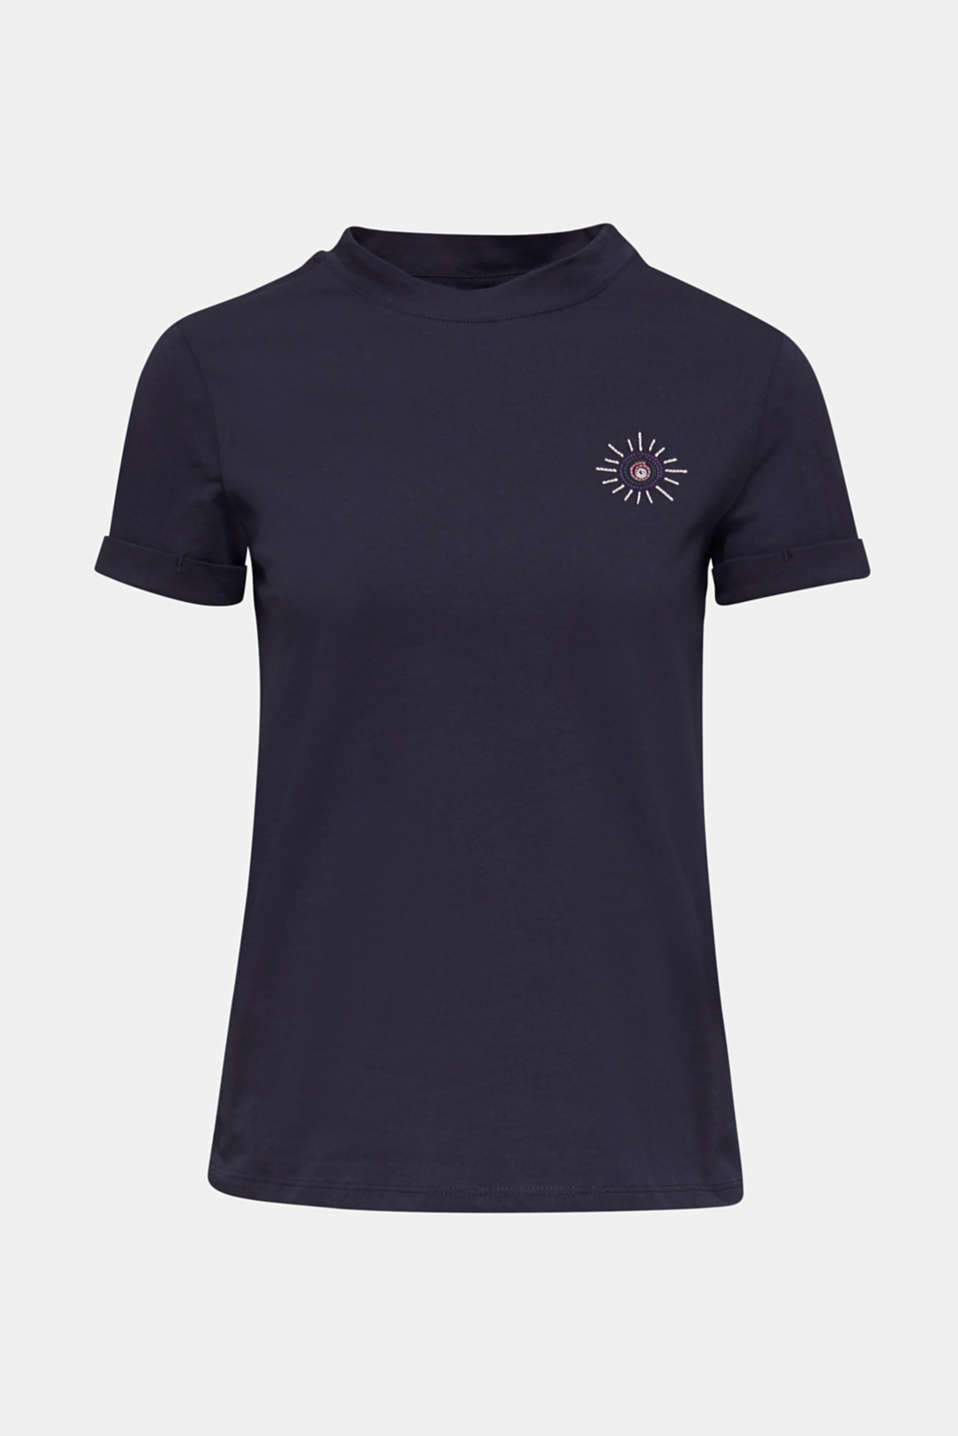 Embroidered top, 100% cotton, NAVY, detail image number 6